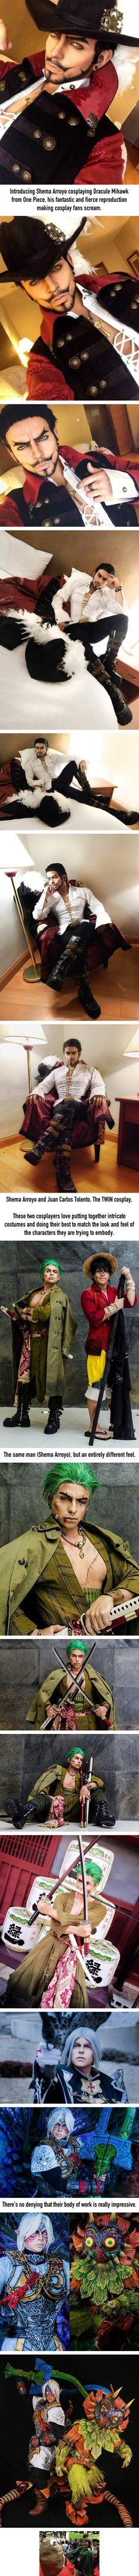 Is this the best Dracule Mihawk cosplay so far. Introducing TWIN Cosplay, Shema Arroyo and Juan Carlos from Mexico